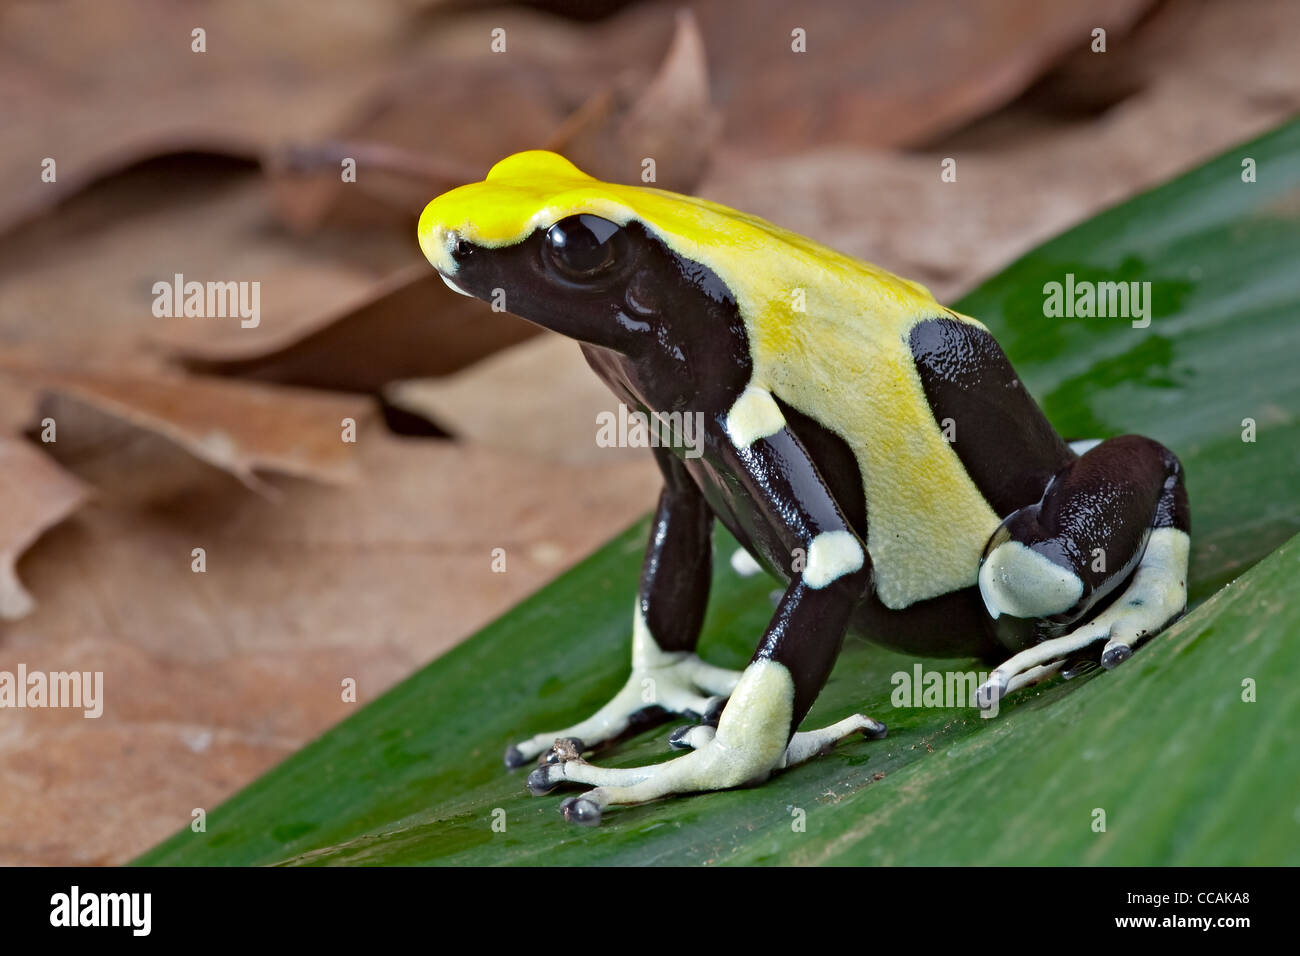 yellow back poison dart frog, Dendrobates tinctorius, Amazon rain forest Suriname - Stock Image